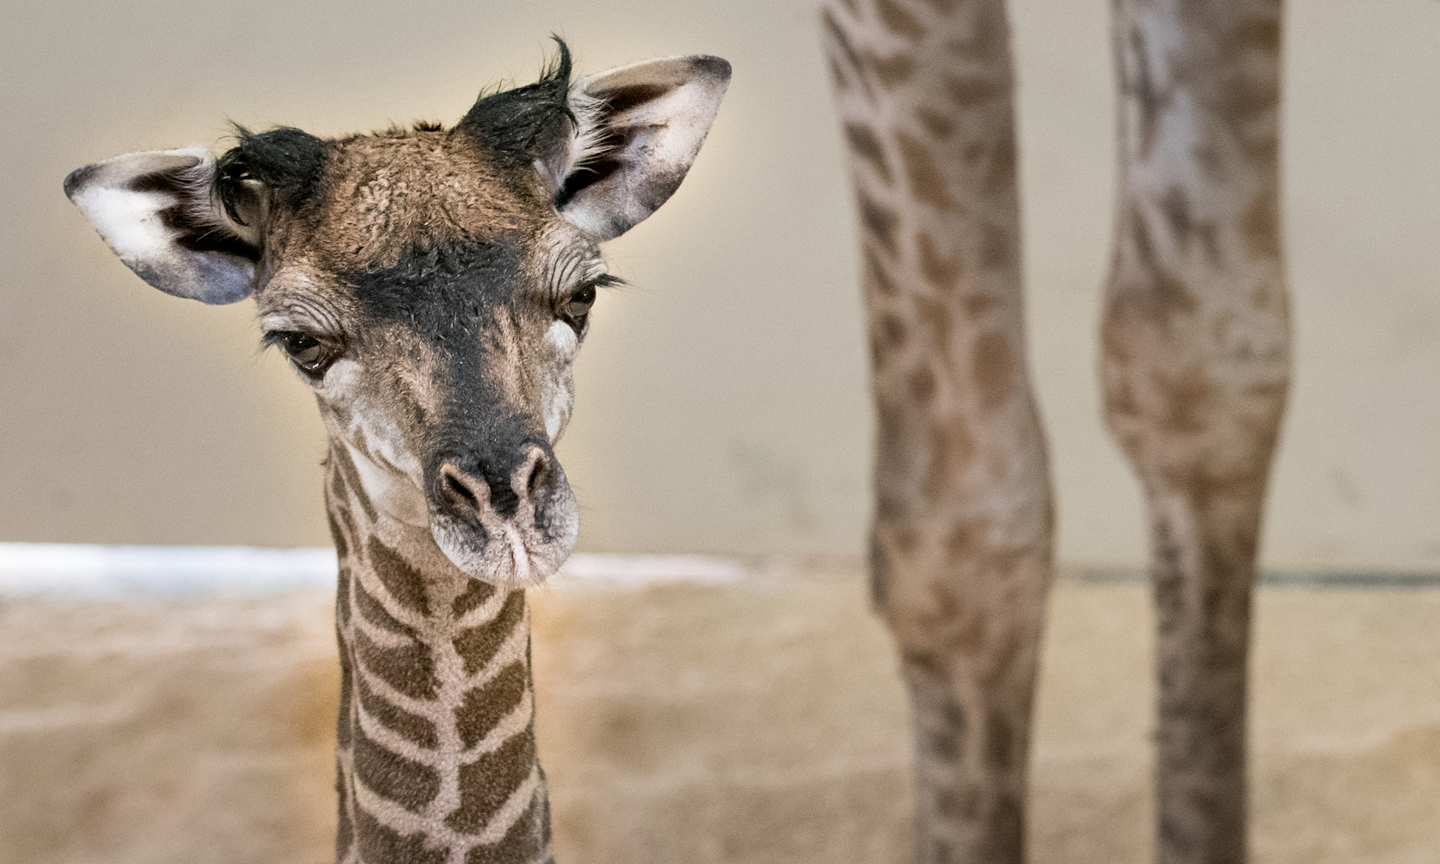 African Masai Giraffe Calf Born at Cleveland Metroparks Zoo  Highlights Wildlife Conservation Efforts